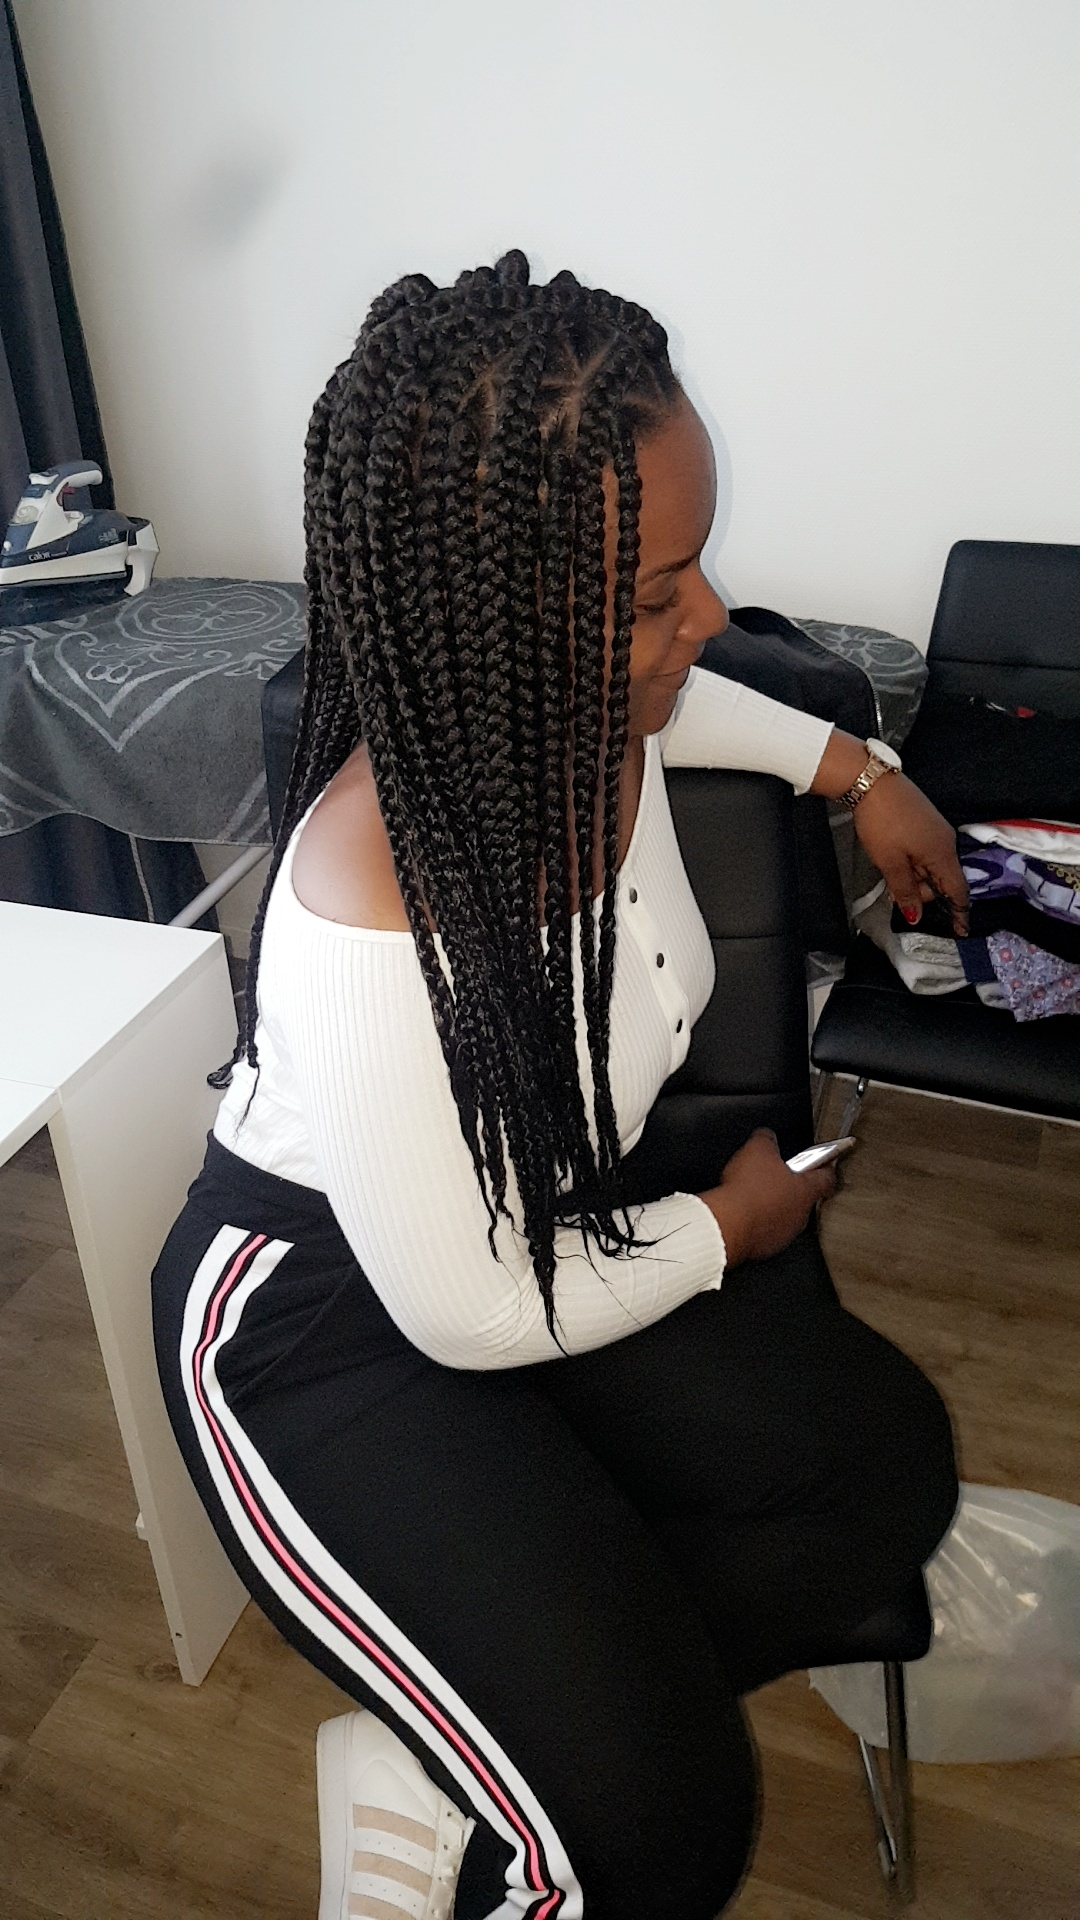 salon de coiffure afro tresse tresses box braids crochet braids vanilles tissages paris 75 77 78 91 92 93 94 95 CBZRYROI